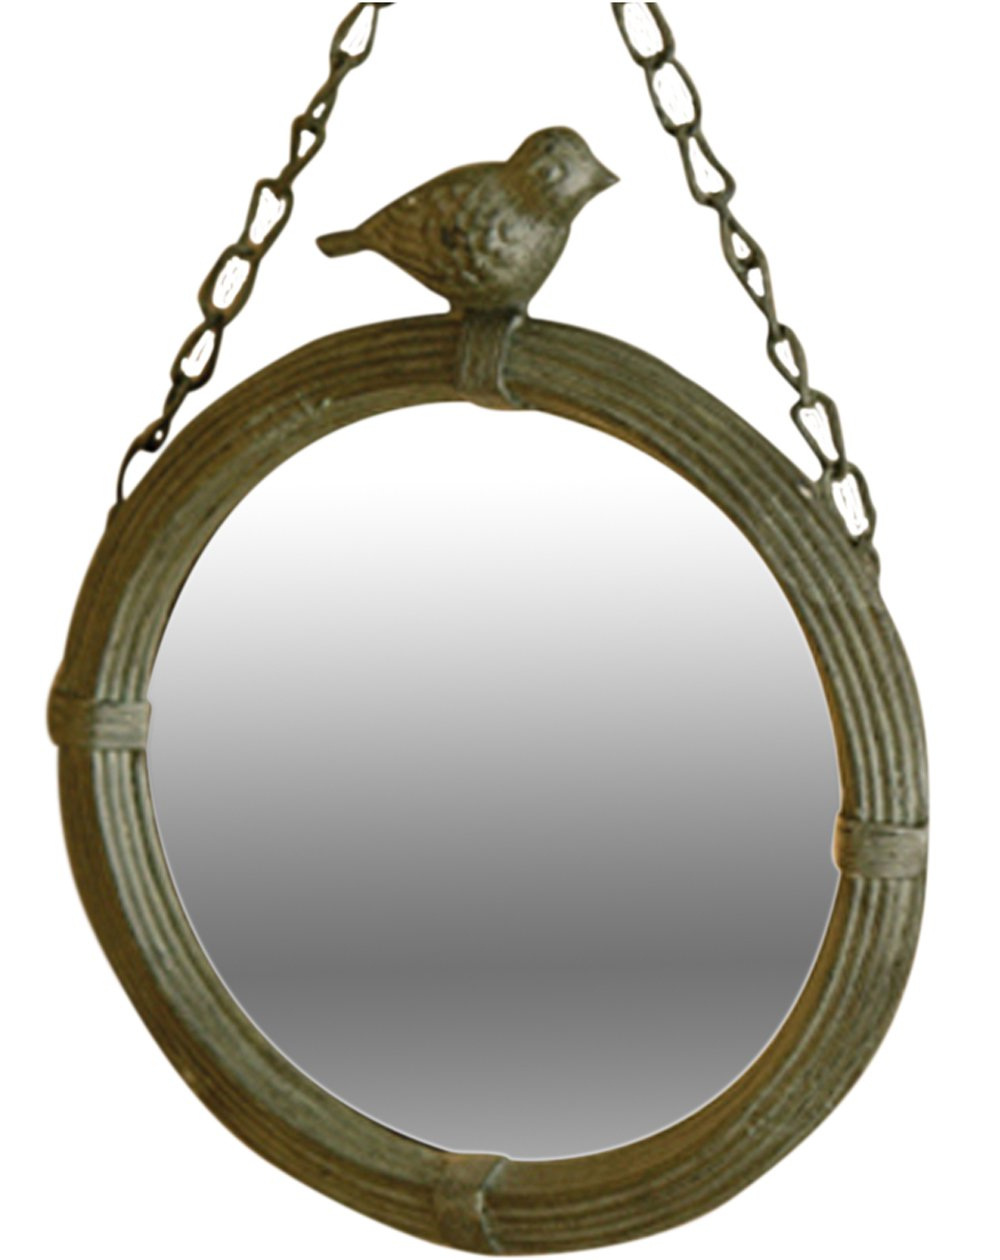 Antique Style Metal Wall Mirror With Bird Home Decor Intended For Most Recently Released Bird Wall Mirrors (View 2 of 20)